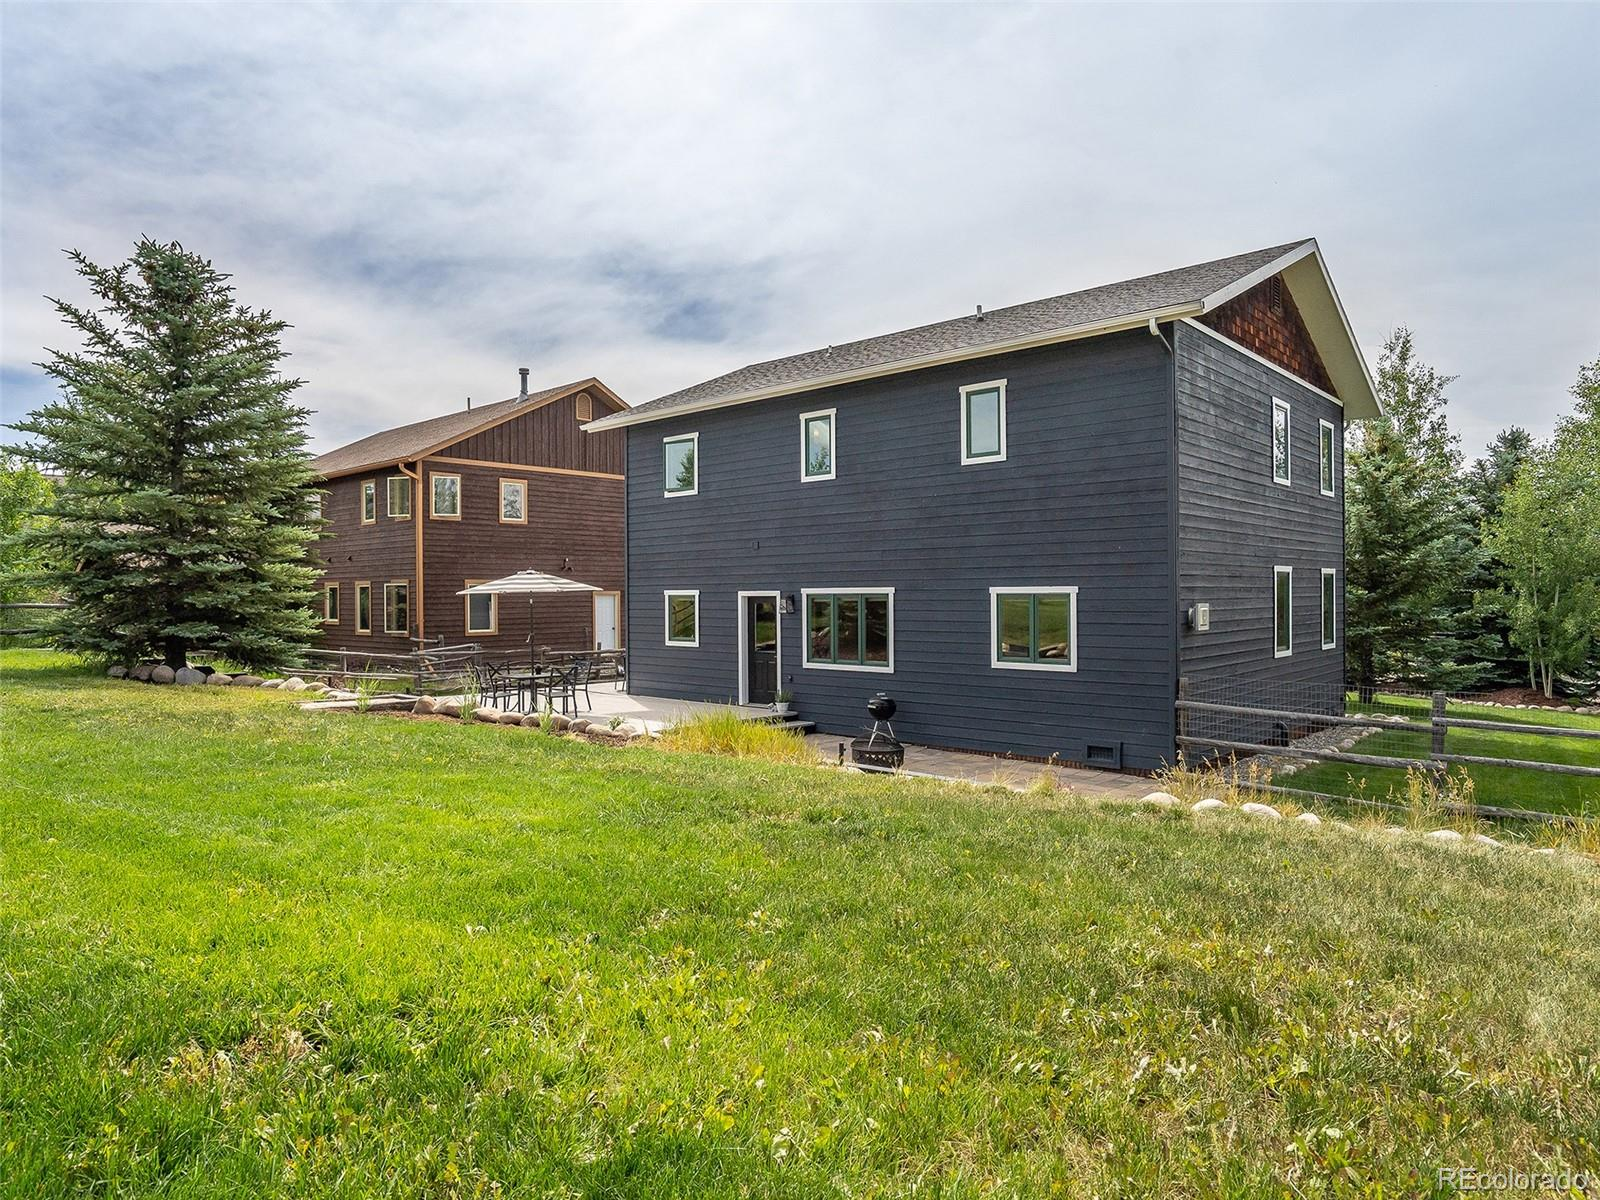 MLS# 2884564 - 21 - 27783 Silver Spur Street, Steamboat Springs, CO 80487